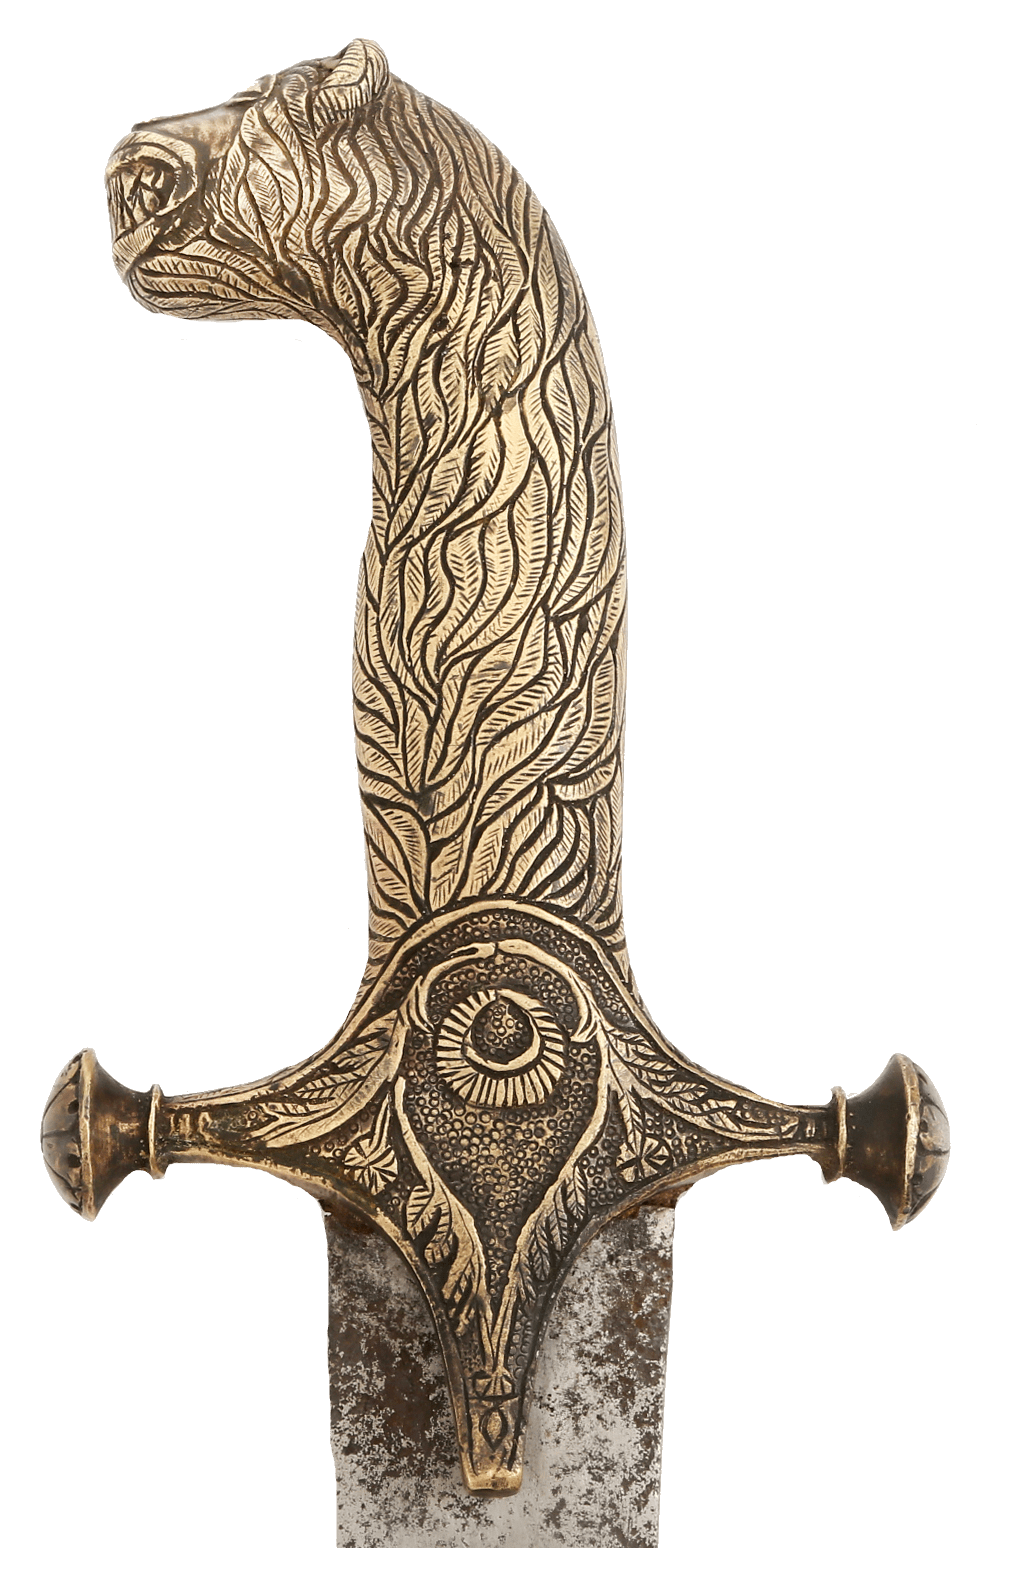 A VERY RARE AND IMPORTANT SWORD FROM THE CIRCLE OF TIPU SULTAN